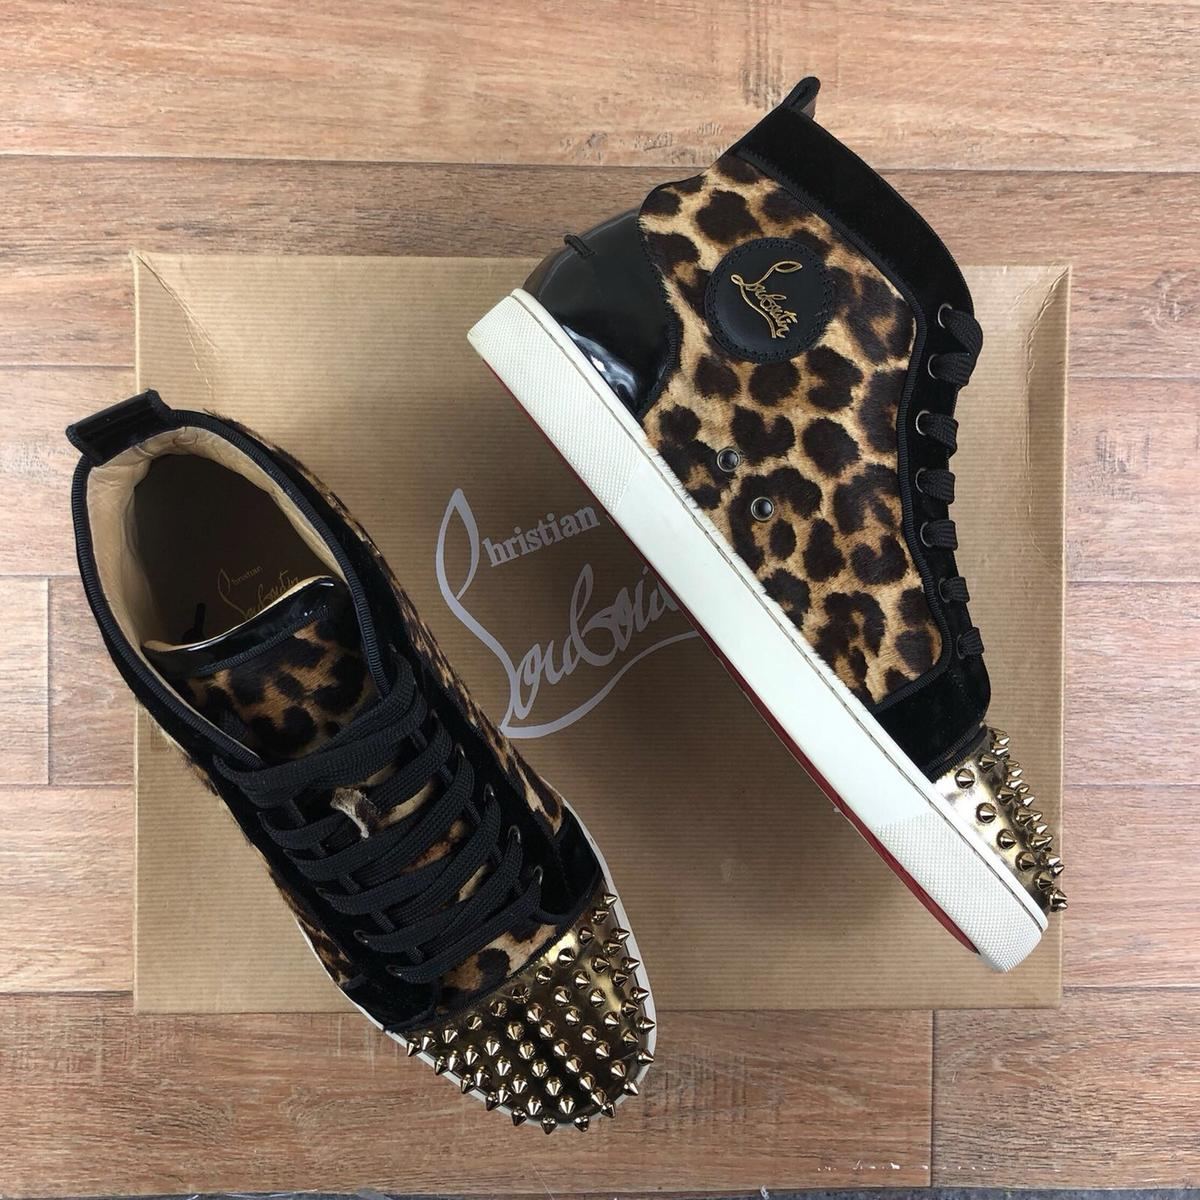 reputable site c4d8f eae07 Louboutin sneaker in HG2 Harrogate for £200.00 for sale - Shpock